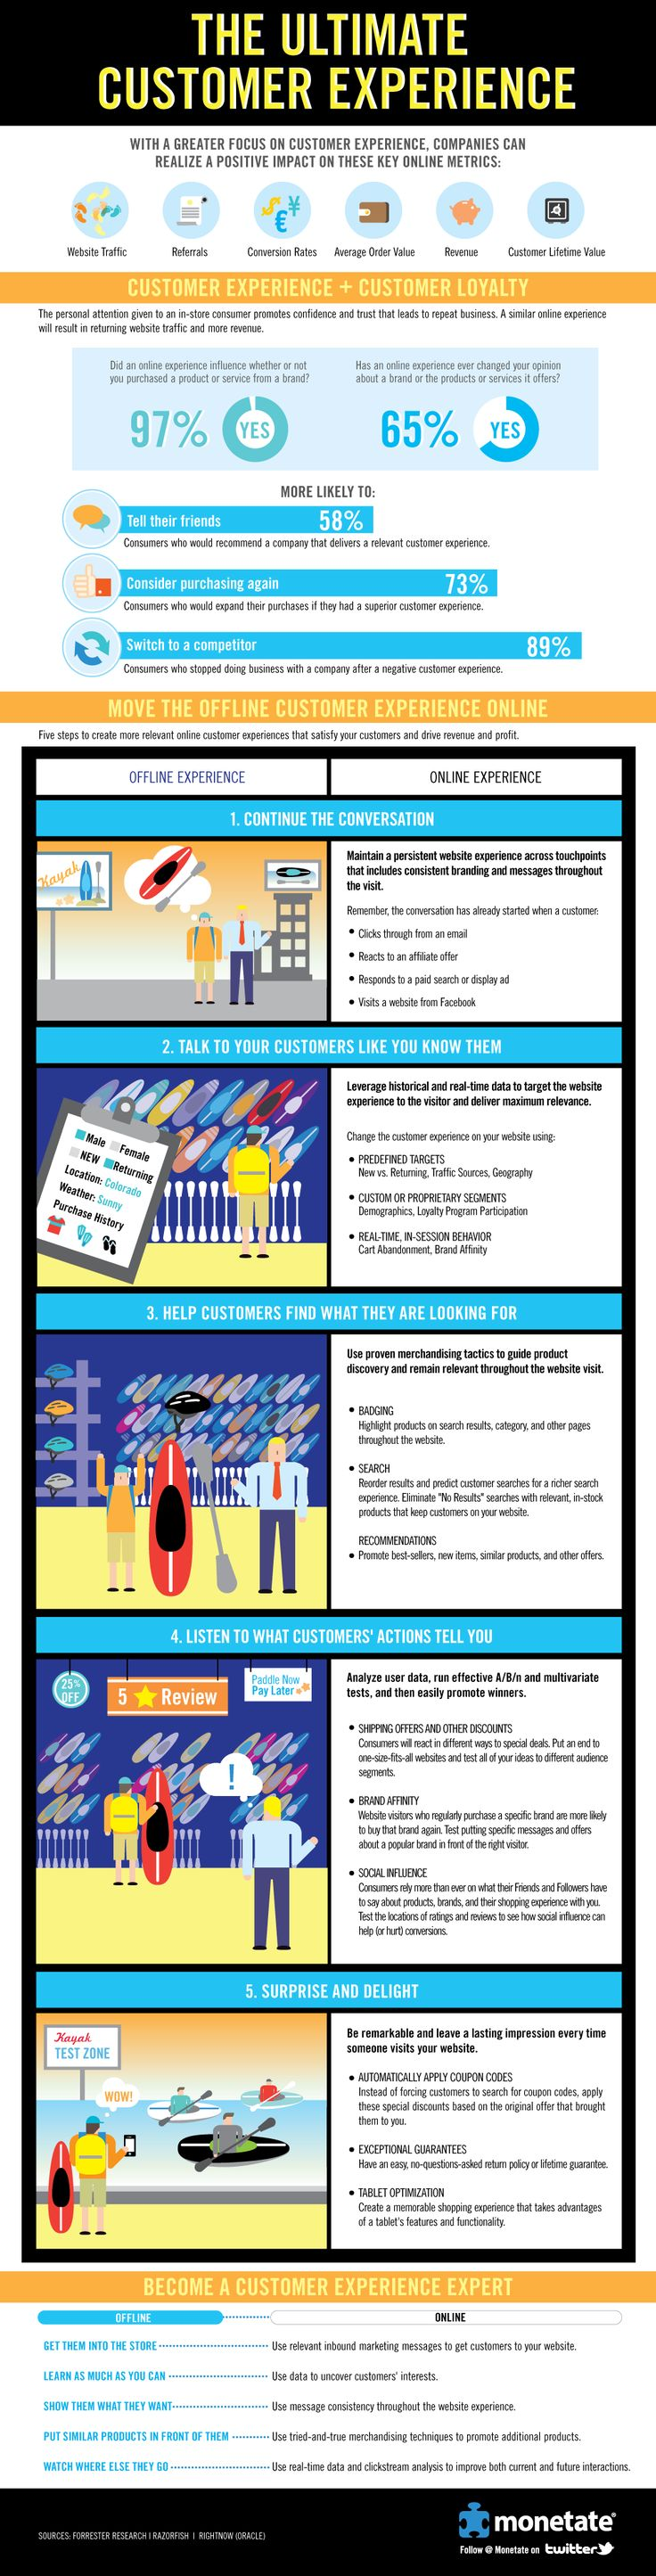 The ultimate customer experience: infographic | Econsultancy